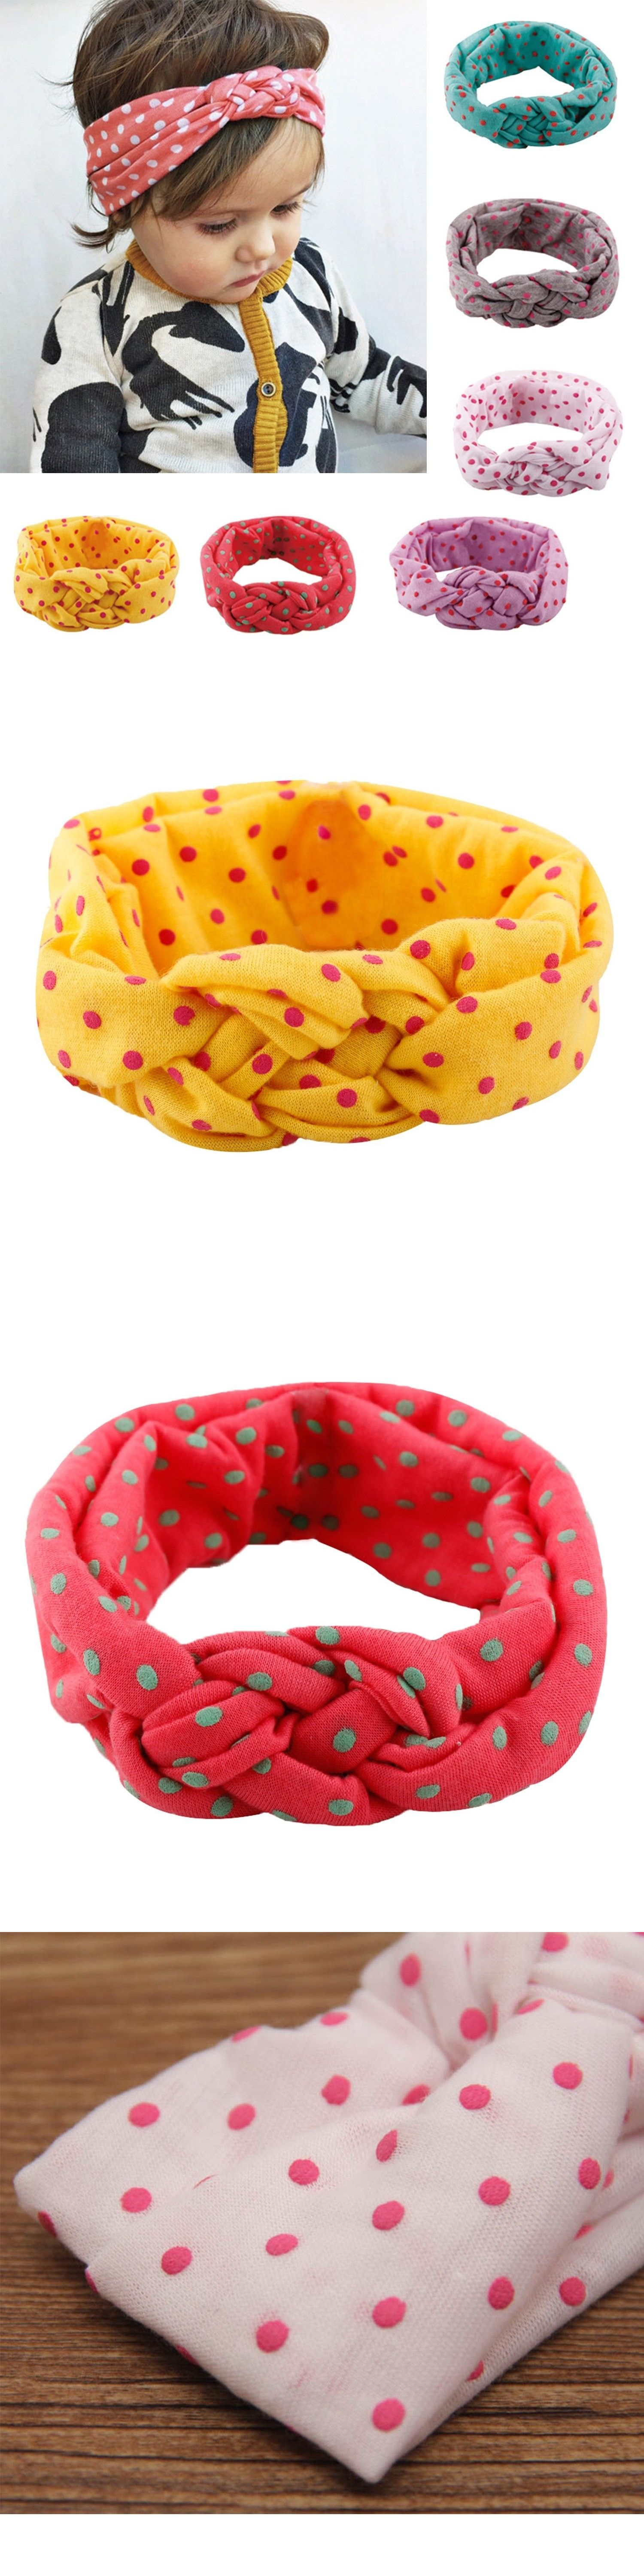 Hair accessories for babies ebay - Hair Accessories 18786 6 Pack Bow Headbands Hair Hoops Multicolor For Baby Girls Toddler 0